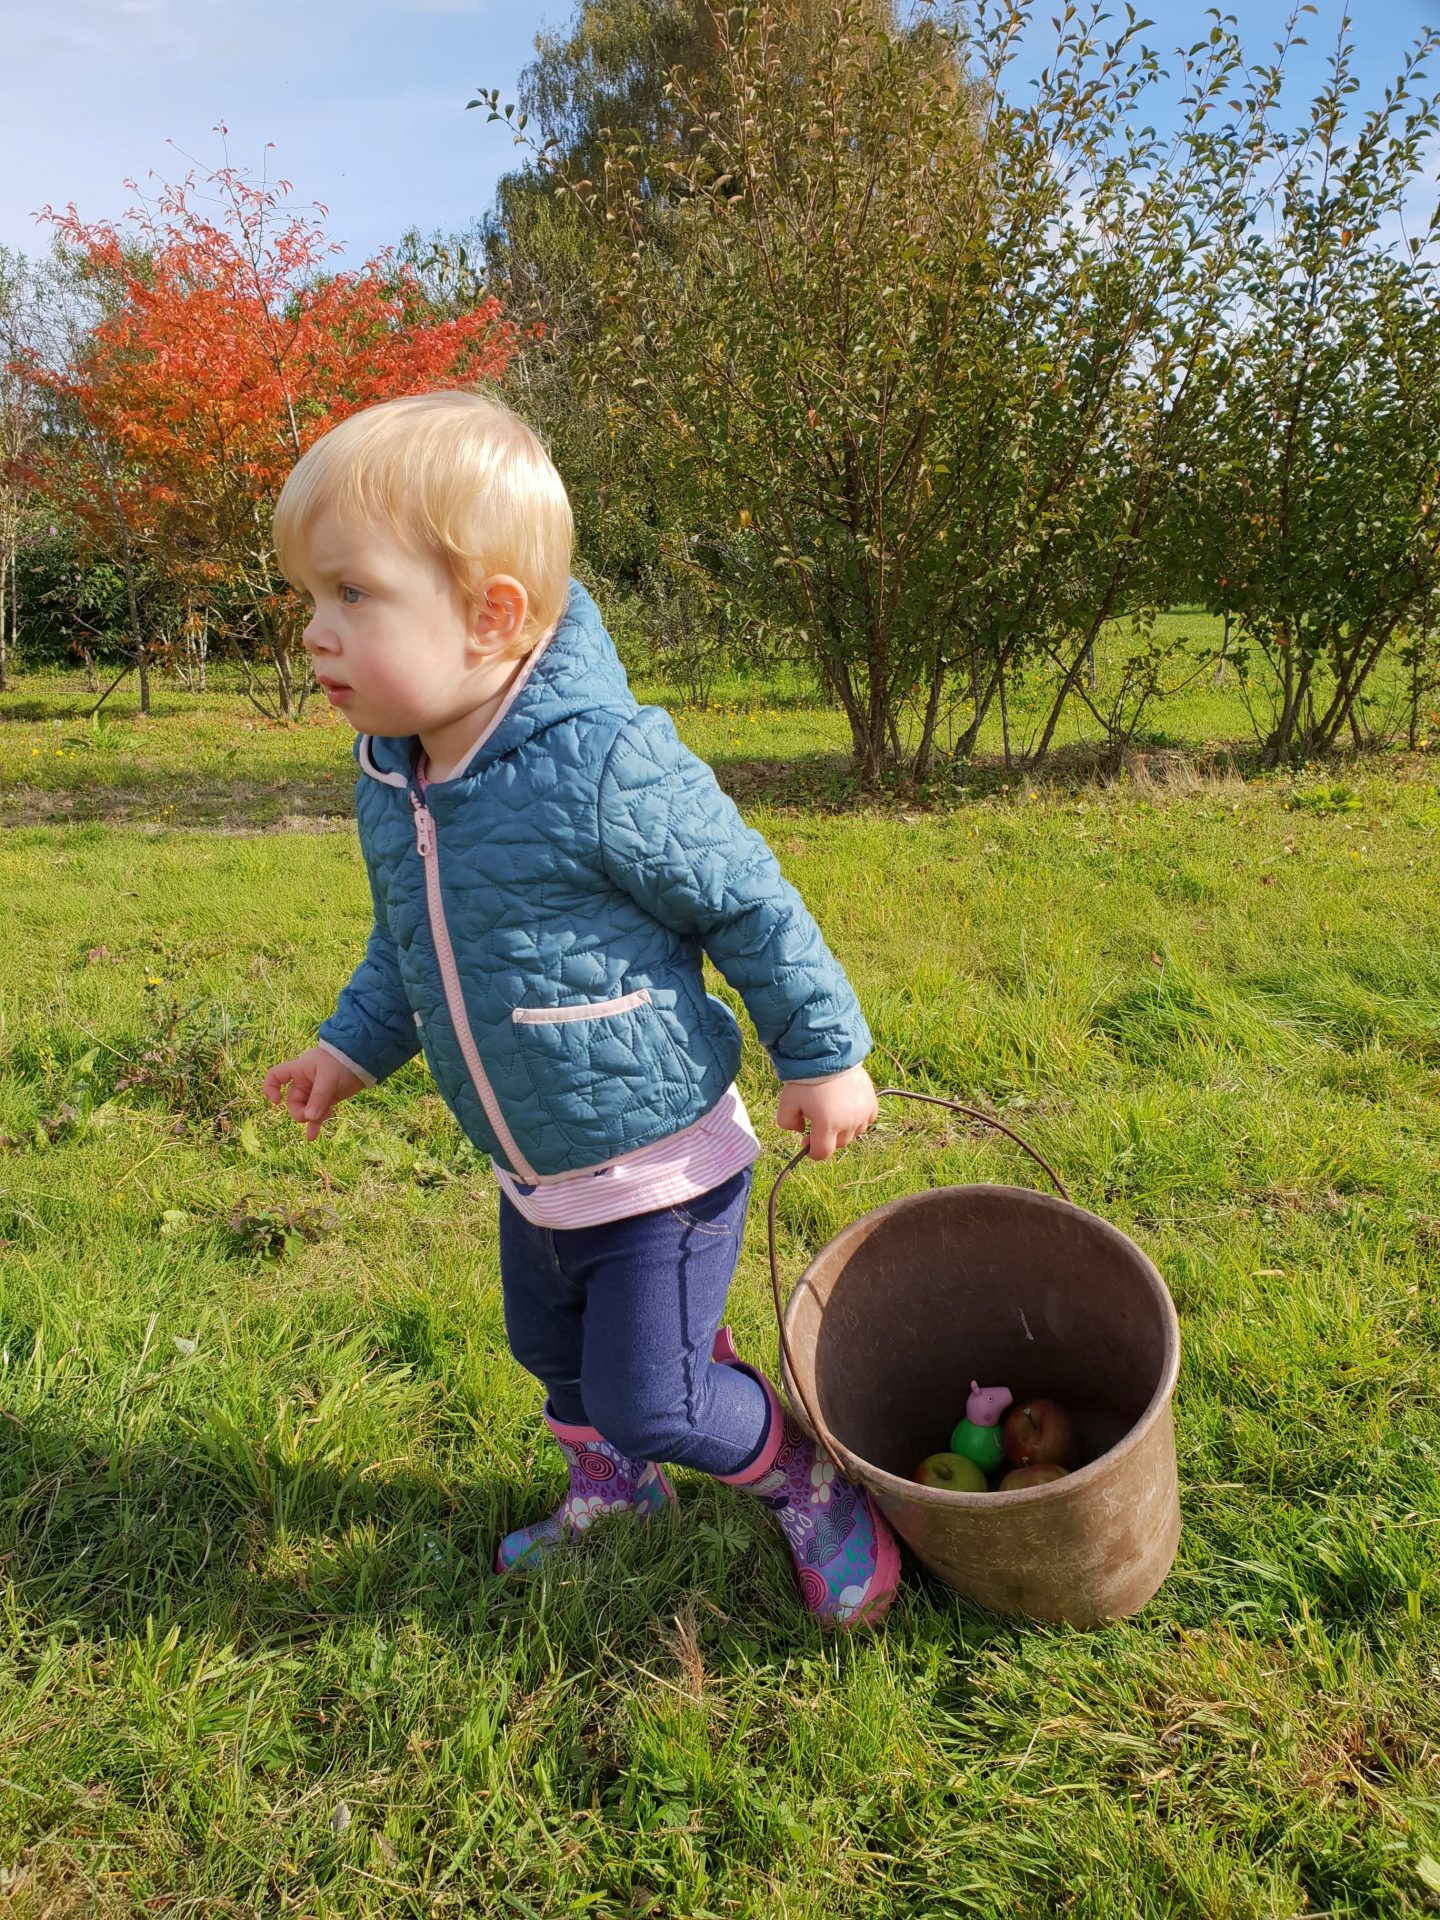 Toddler with bucket after apple picking in Meopham, Kent